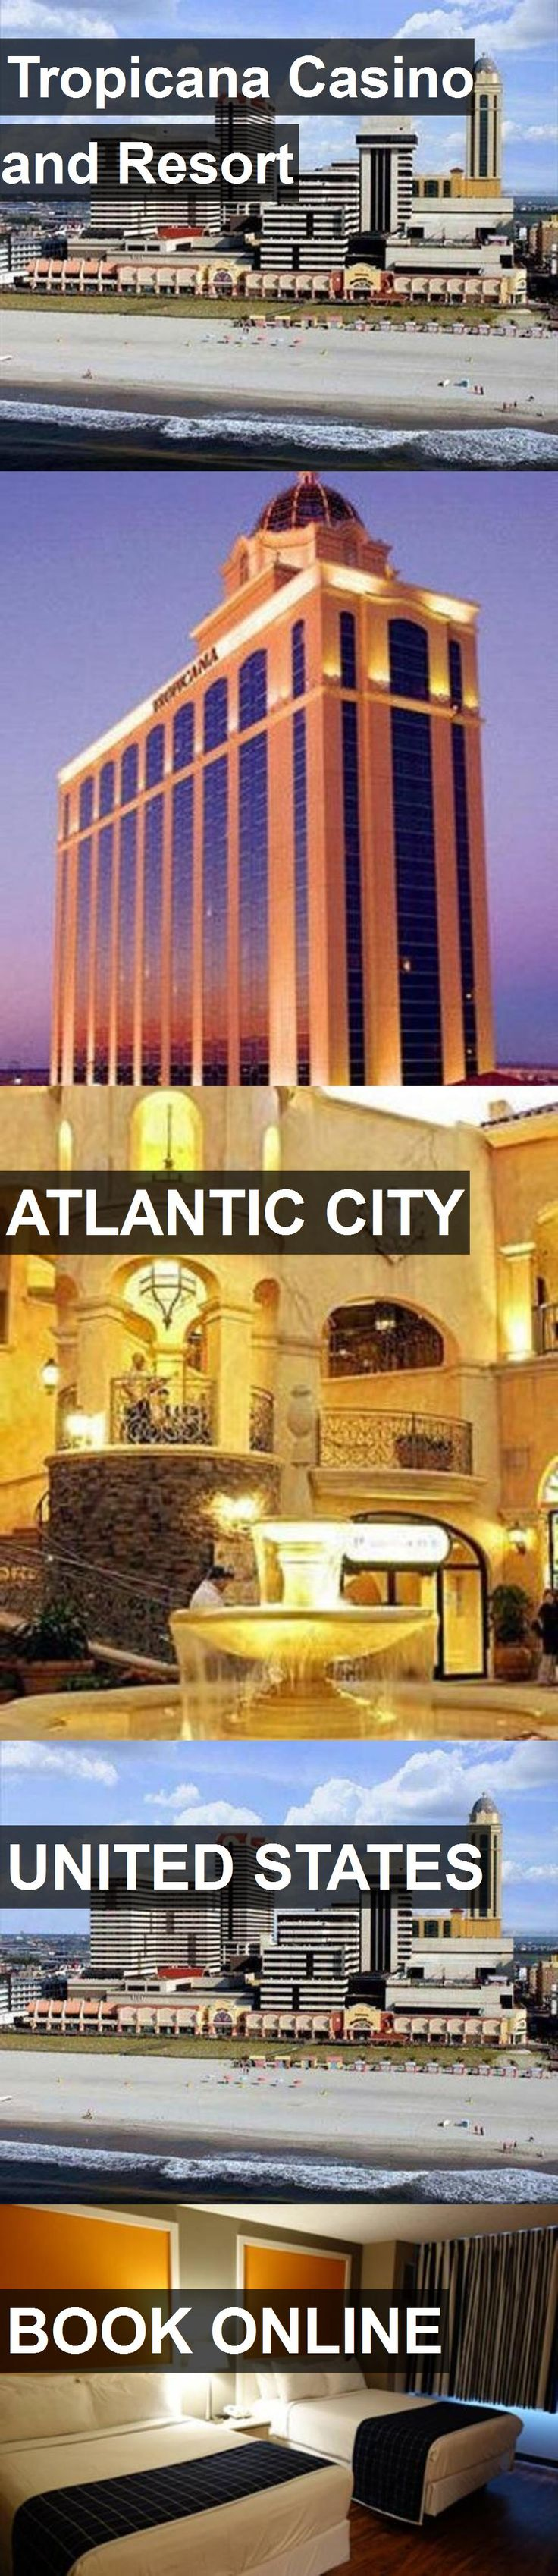 Hotel Tropicana Casino and Resort in Atlantic City, United States. For more information, photos, reviews and best prices please follow the link. #UnitedStates #AtlanticCity #travel #vacation #hotel